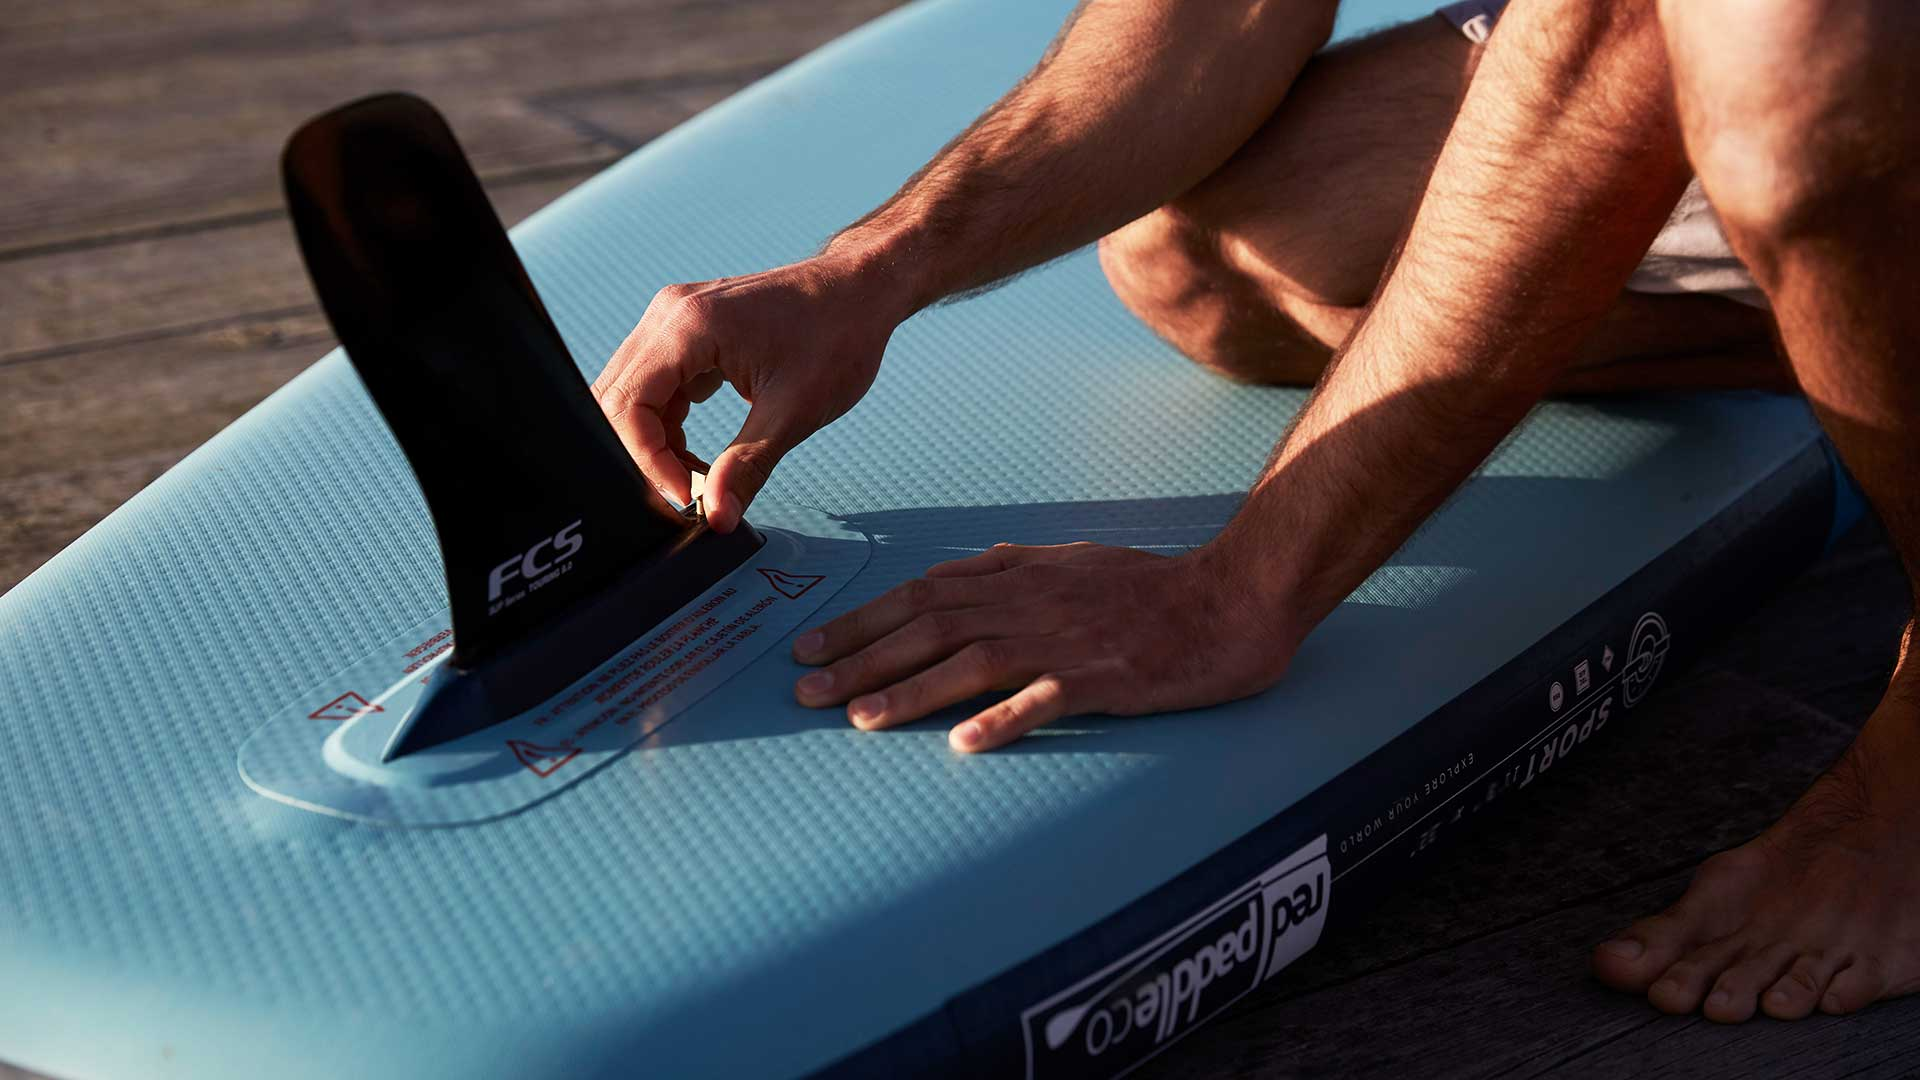 redpaddleco-113-sport-inflatable-paddle-board-desktop-gallery-fins